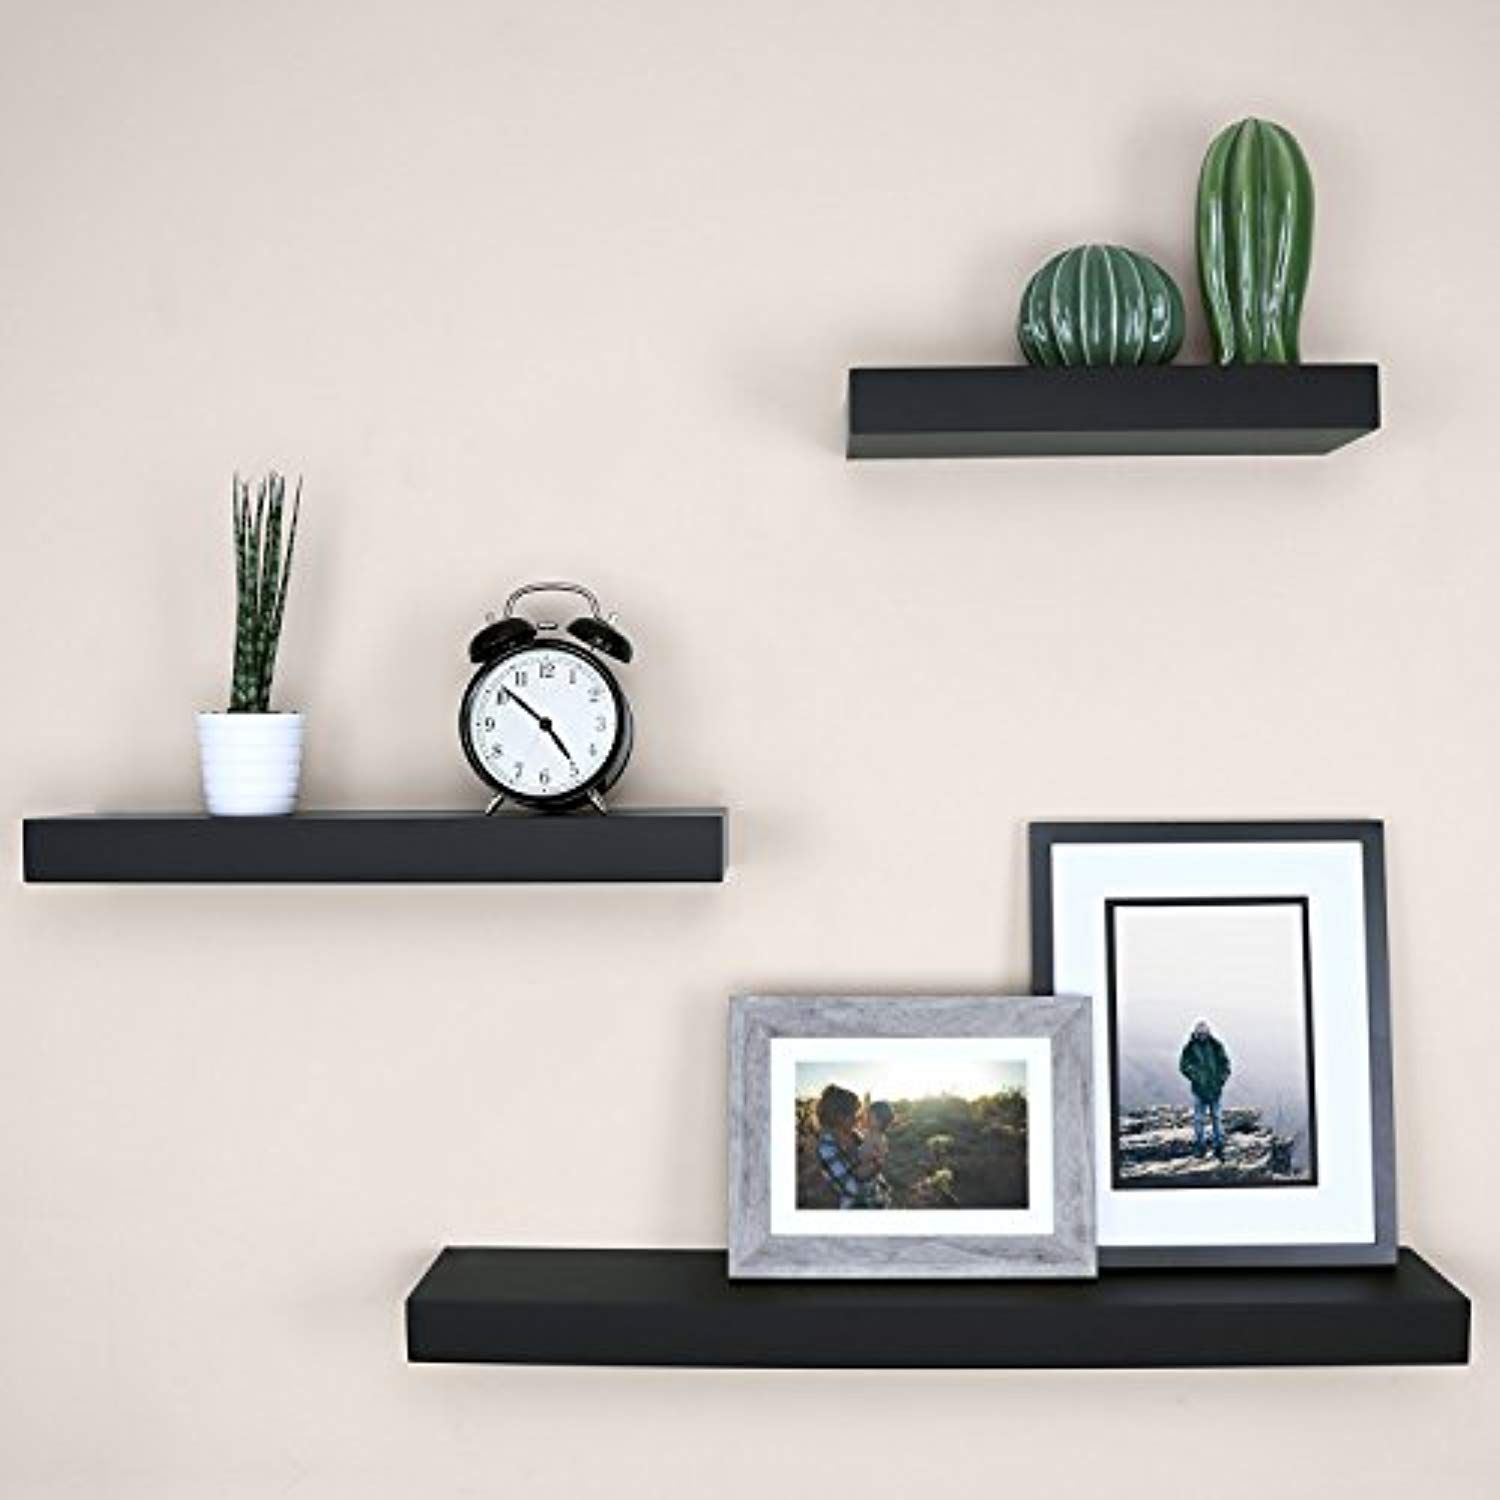 Ballucci Block Floating Wall Ledge 12 16 24 Set Of 3 Black To View Further For This Item Visit The Image Link This Is An Af With Images Black Floating Shelves